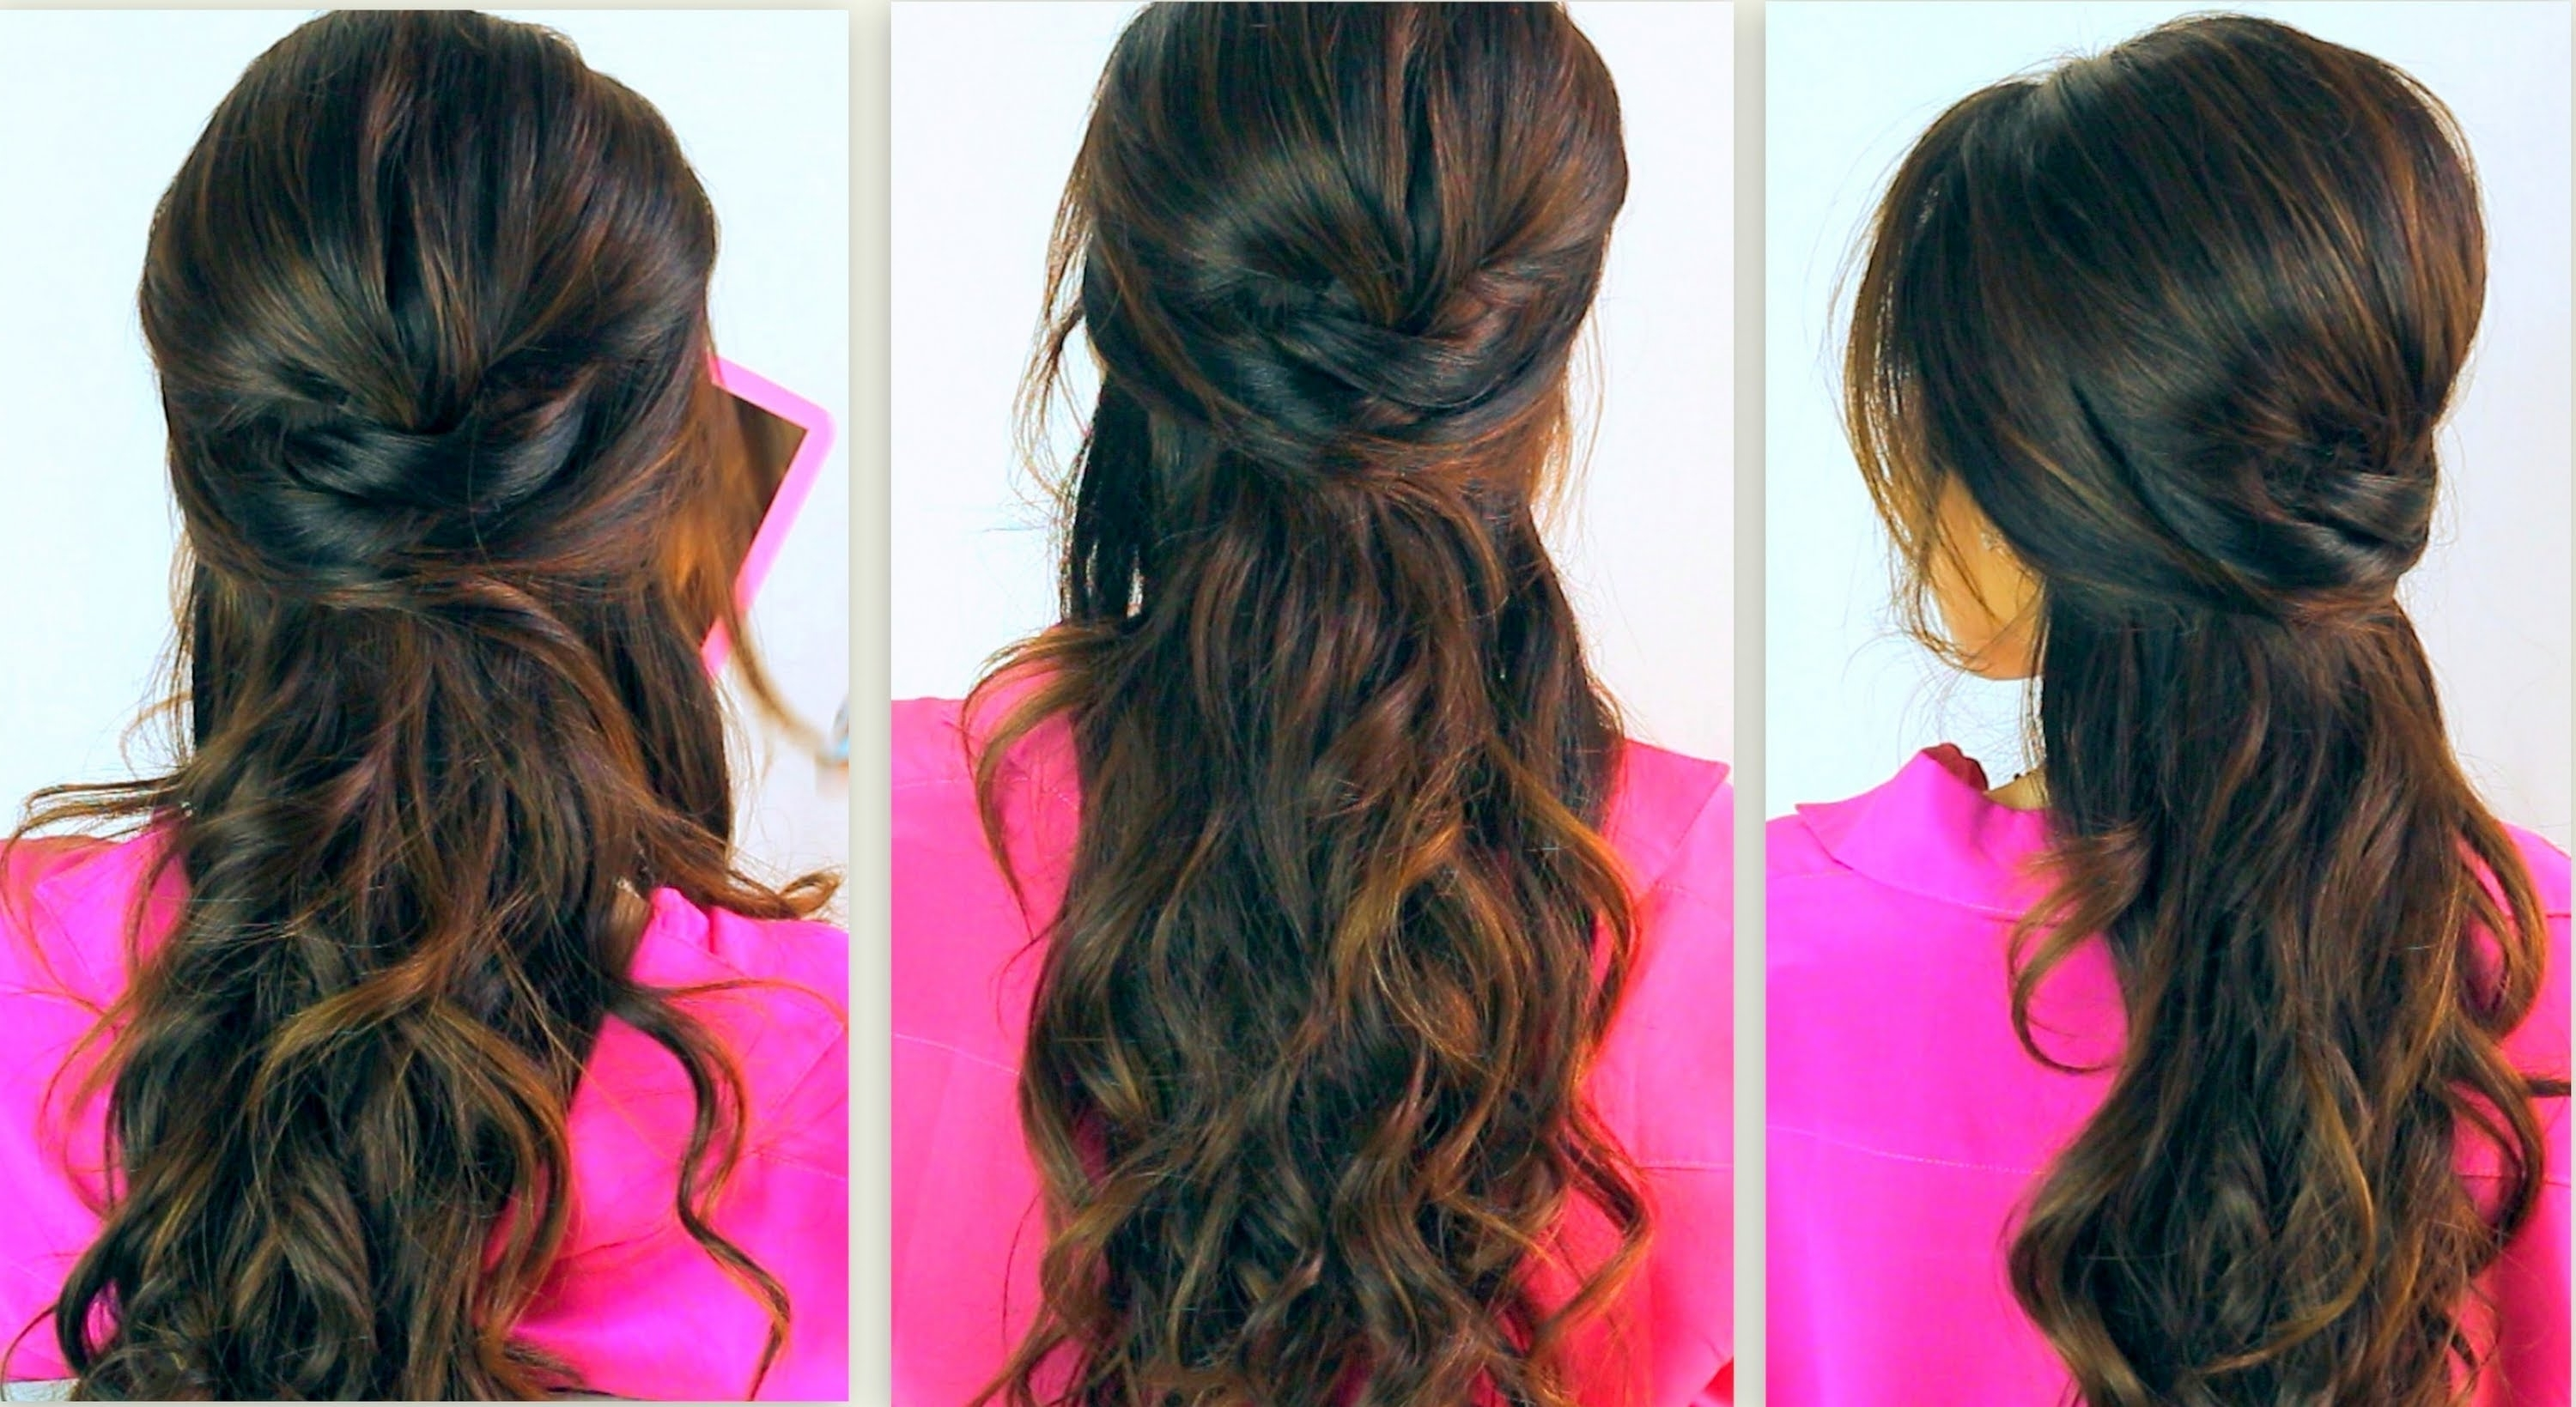 ☆ Cute Back To School Hairstyles | Everyday Prom Curly Half Up With Regard To Long Hair Half Updo Hairstyles (View 7 of 15)